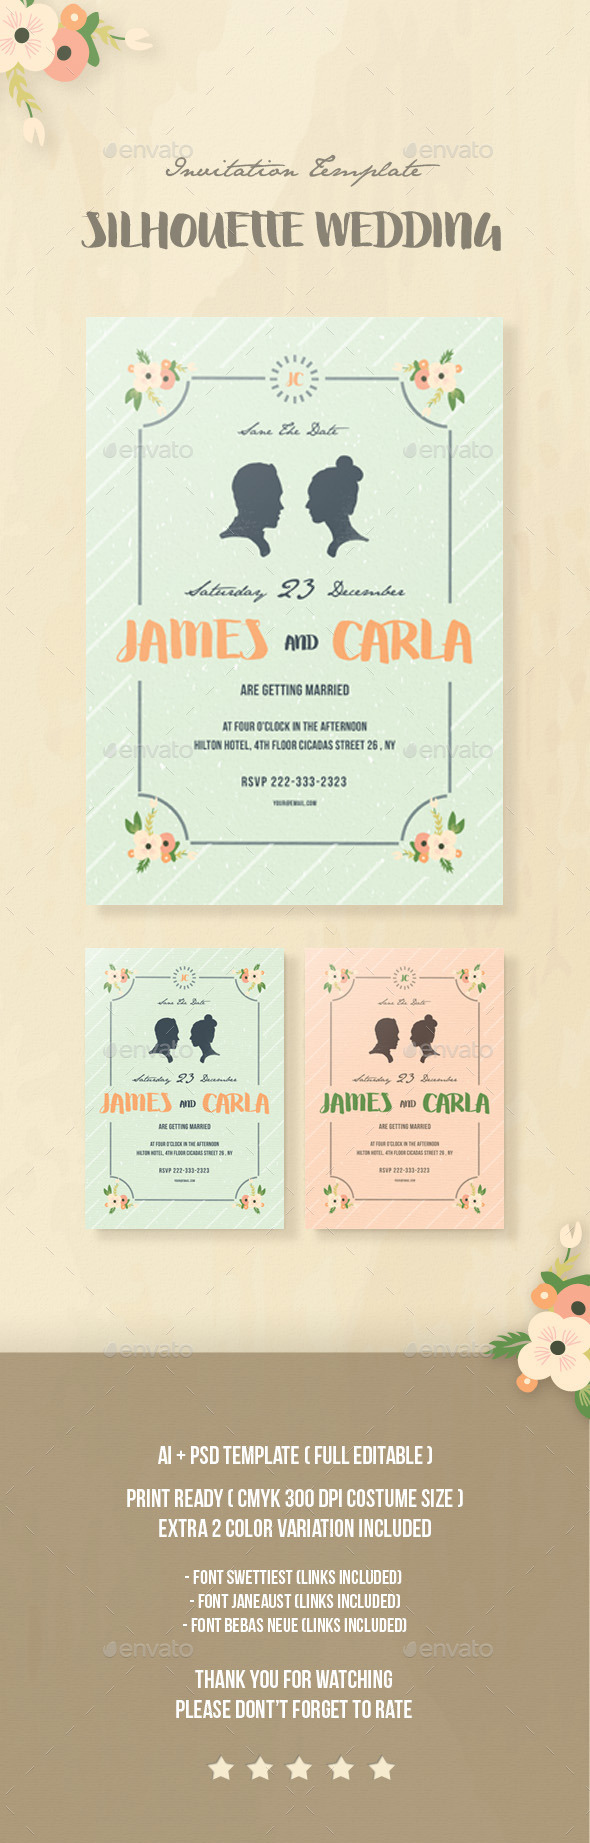 Silhouette Wedding Invitation - Invitations Cards & Invites